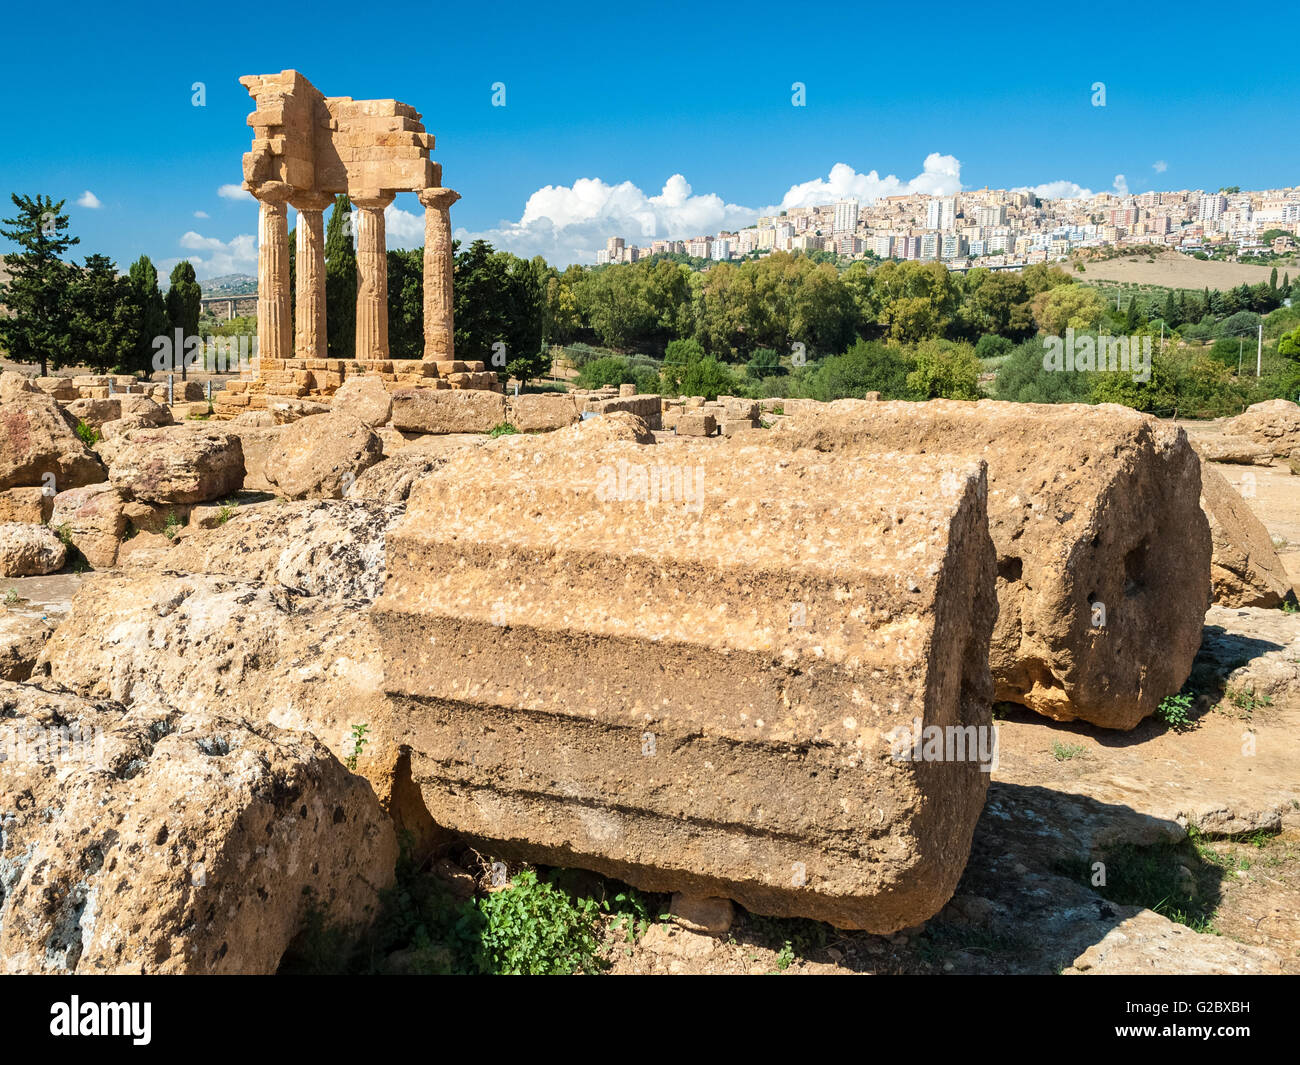 Two big columns in the Valley of the Temples of Agrigento; the temple of Dioscuri in the background - Stock Image